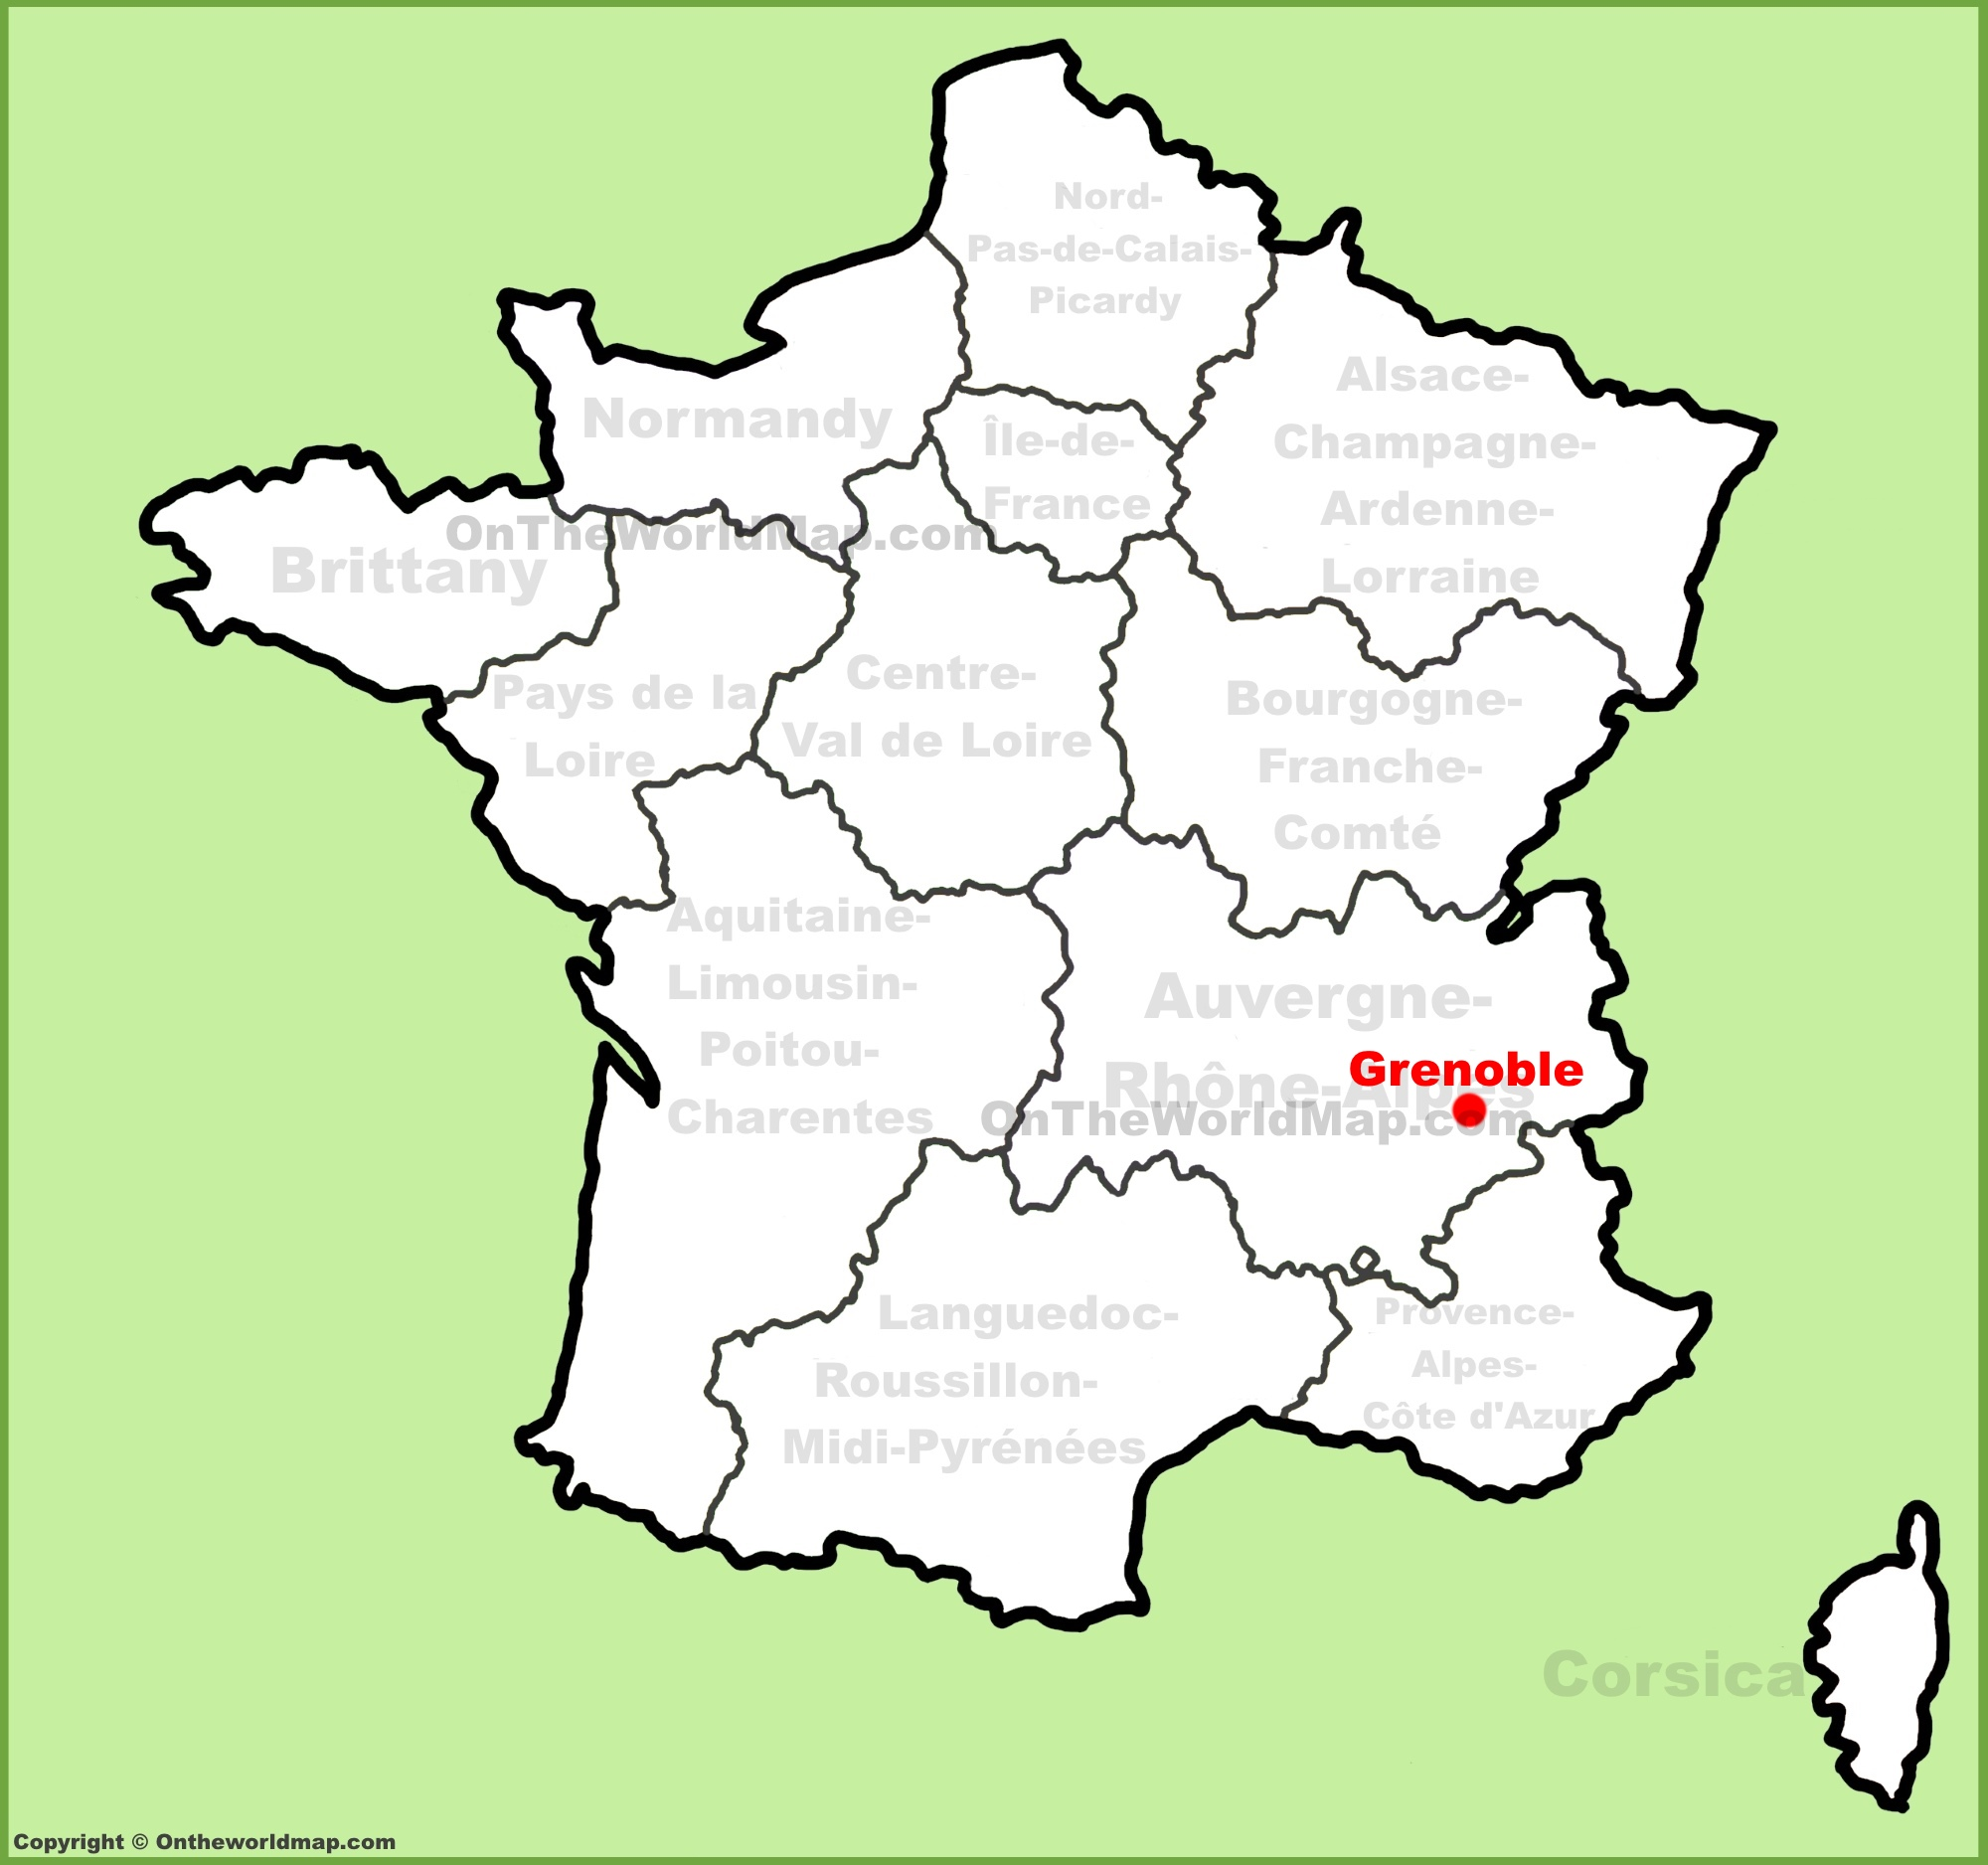 Grenoble location on the France map